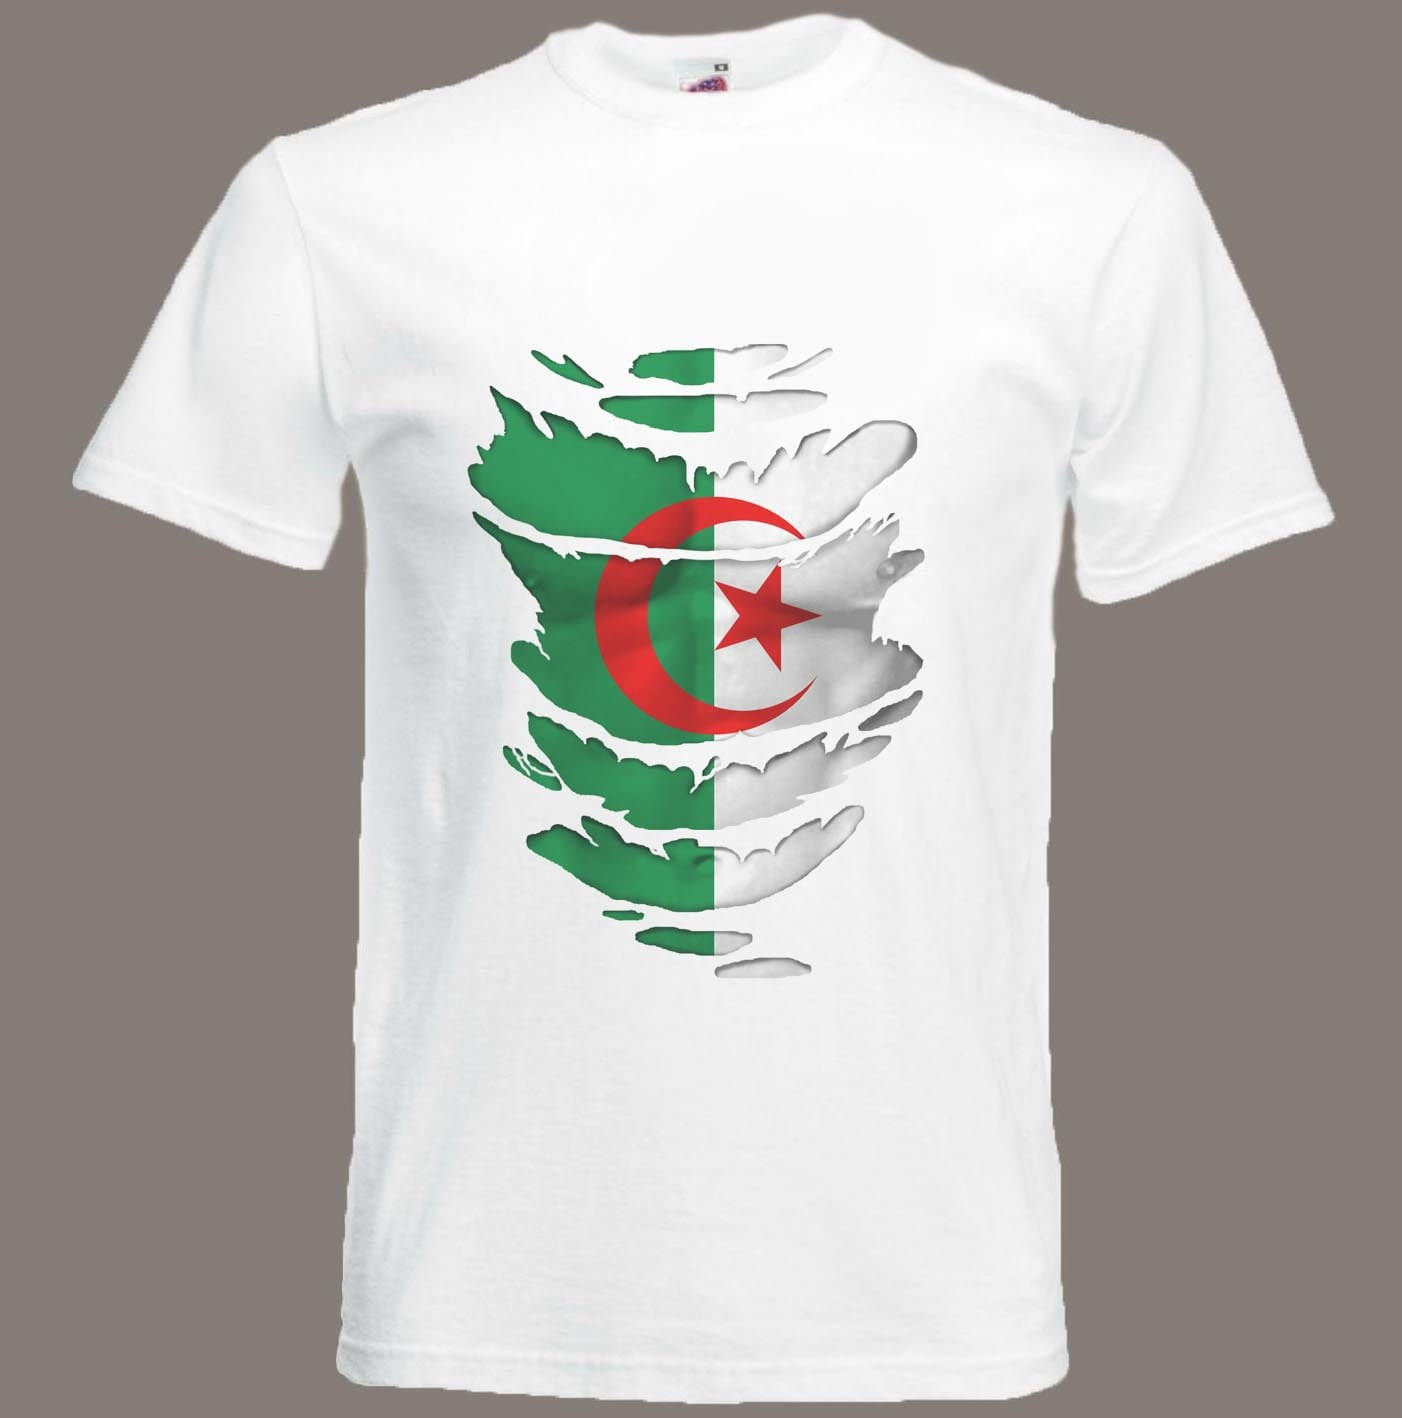 Algerian Flag T-Shirt  Muscles see Muscles  through Ripped T-Shirt Algeria in all sizes b5f3c5